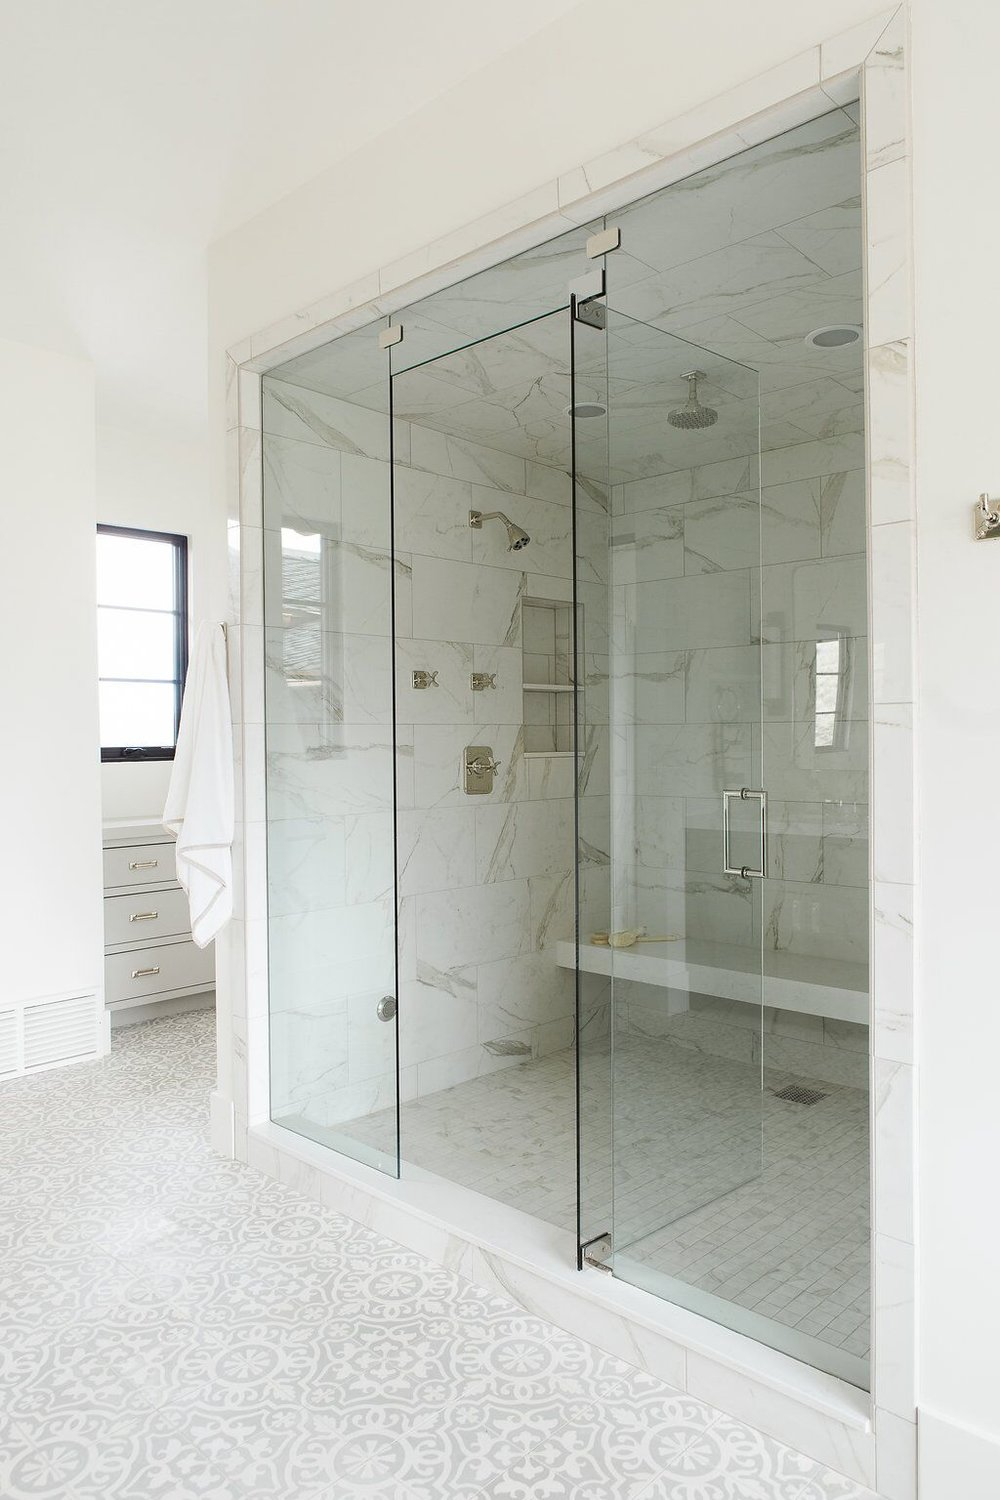 39Master+bathroom+with+concrete+tile,+free+standing+tub,+and+walk+in+shower.jpg